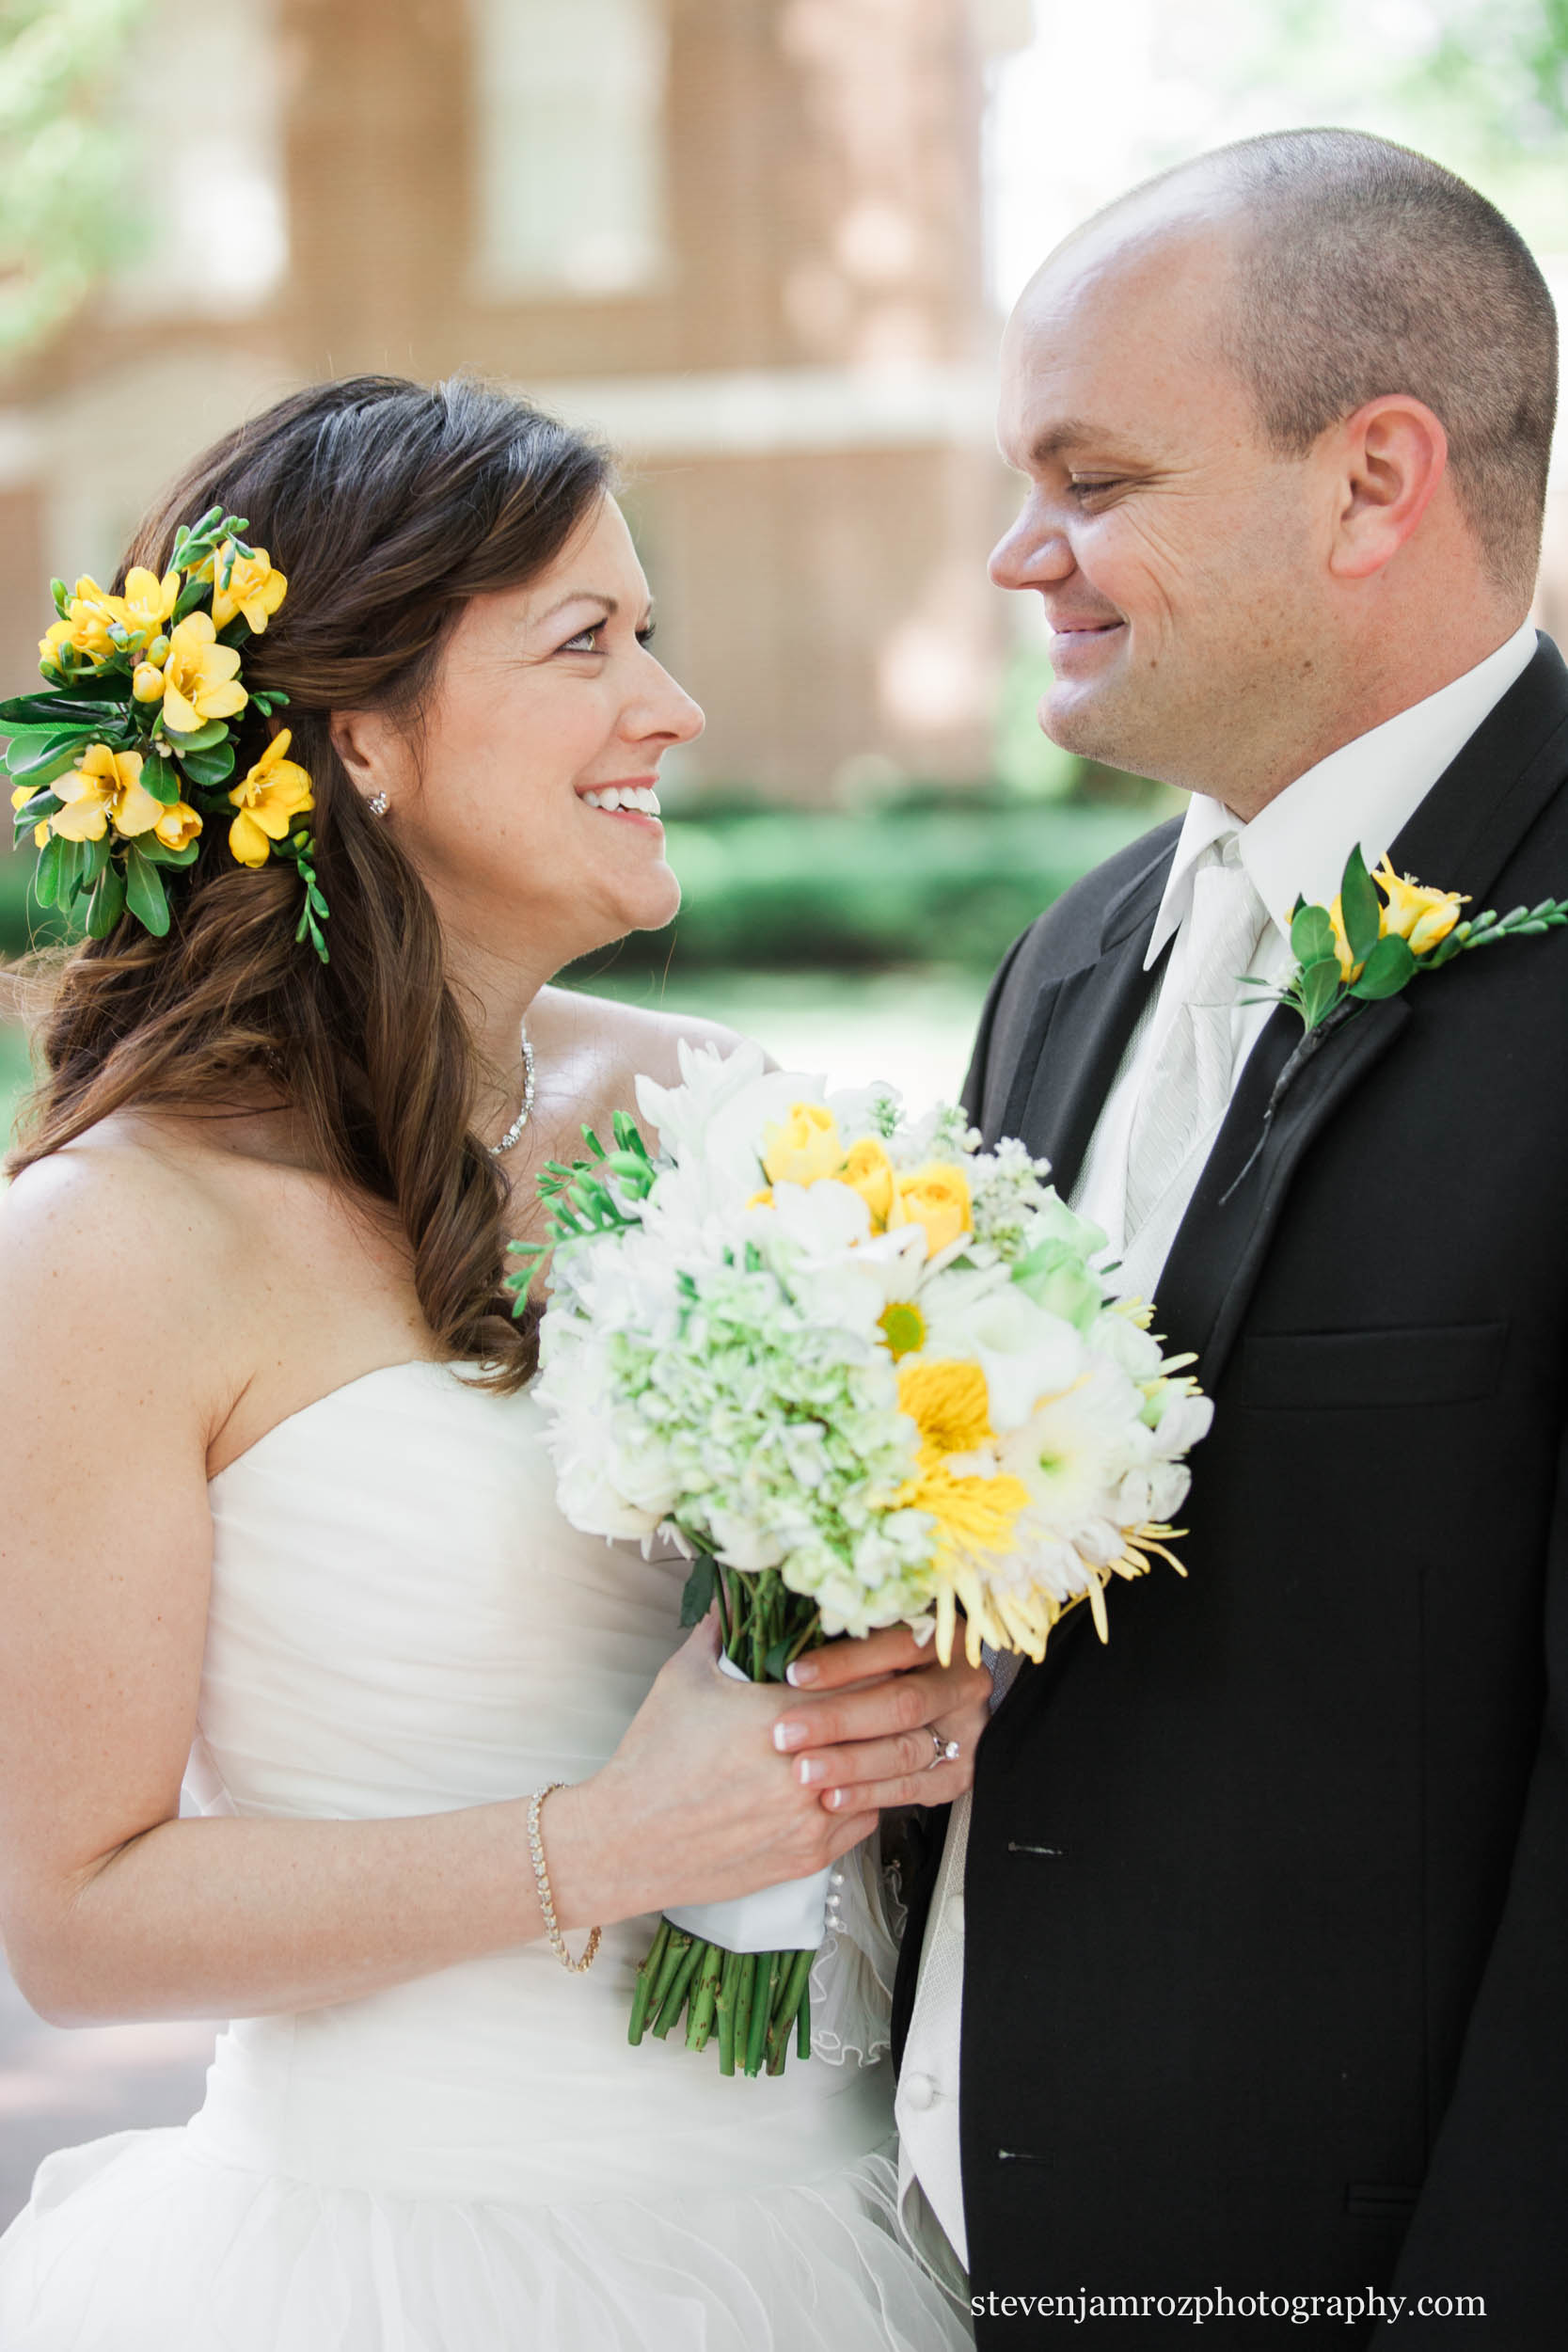 yellow-white-flower-bouquet-wedding-raleigh-steven-jamroz-photography-0290.jpg